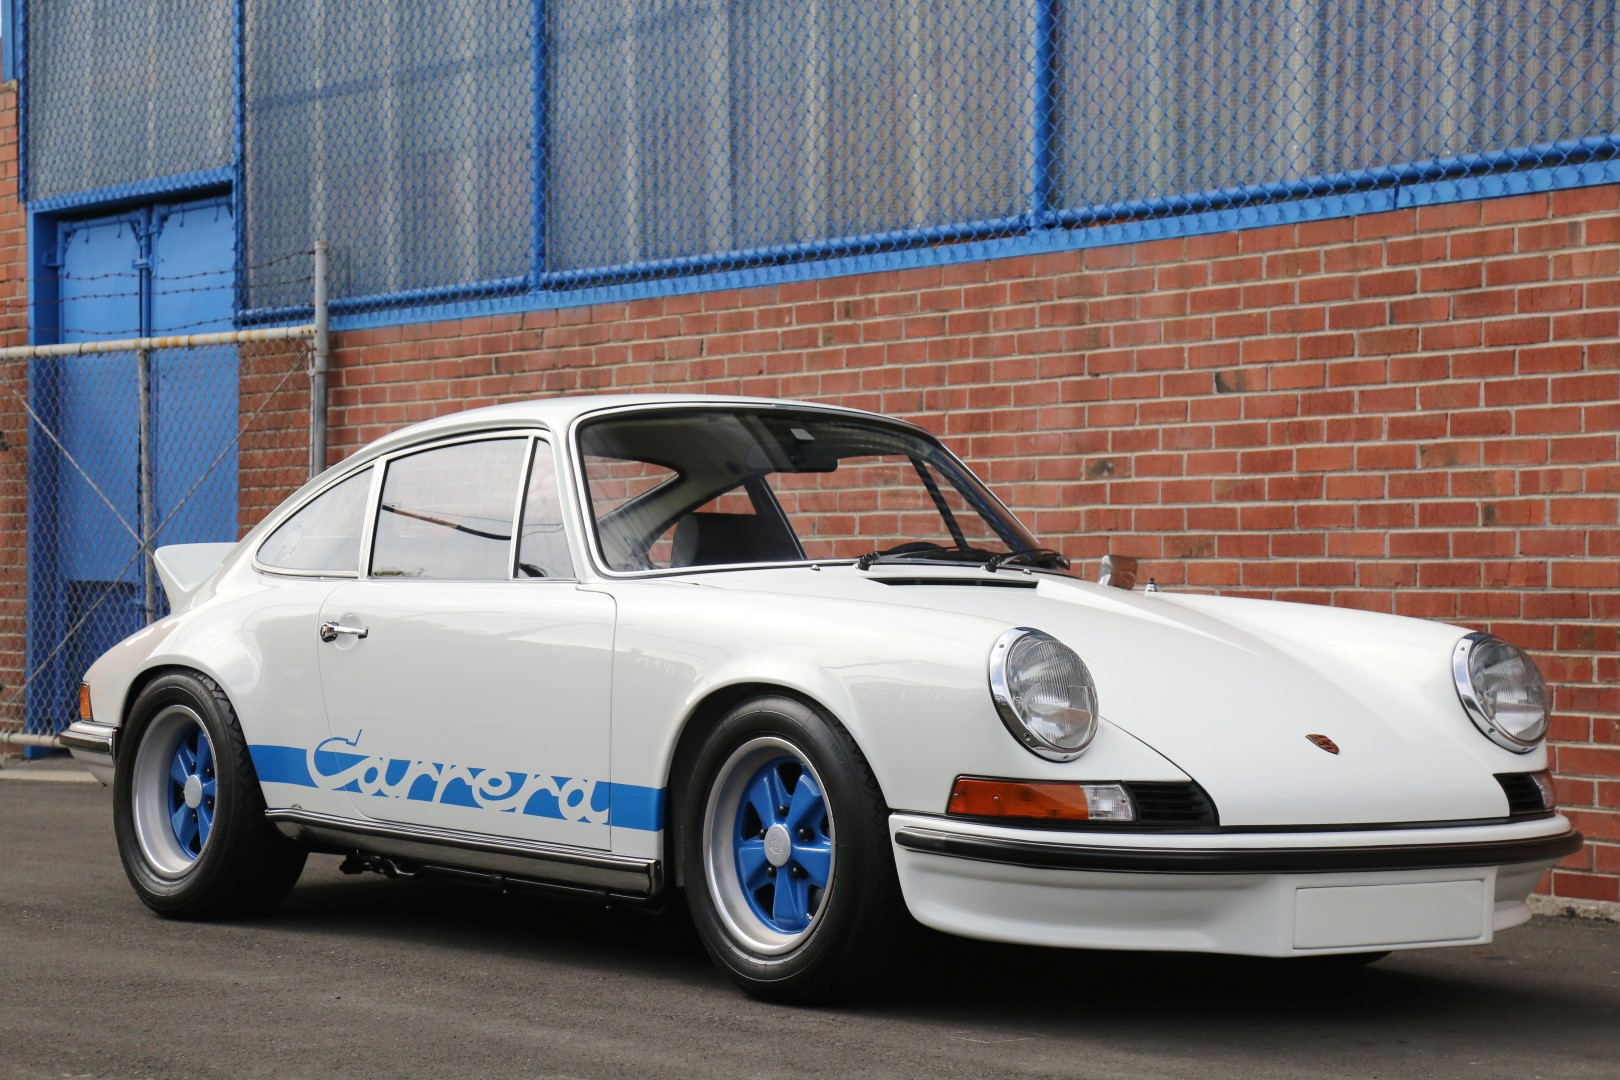 Porsche-911-Carrera-RS-2.7-1973-for-sale-30